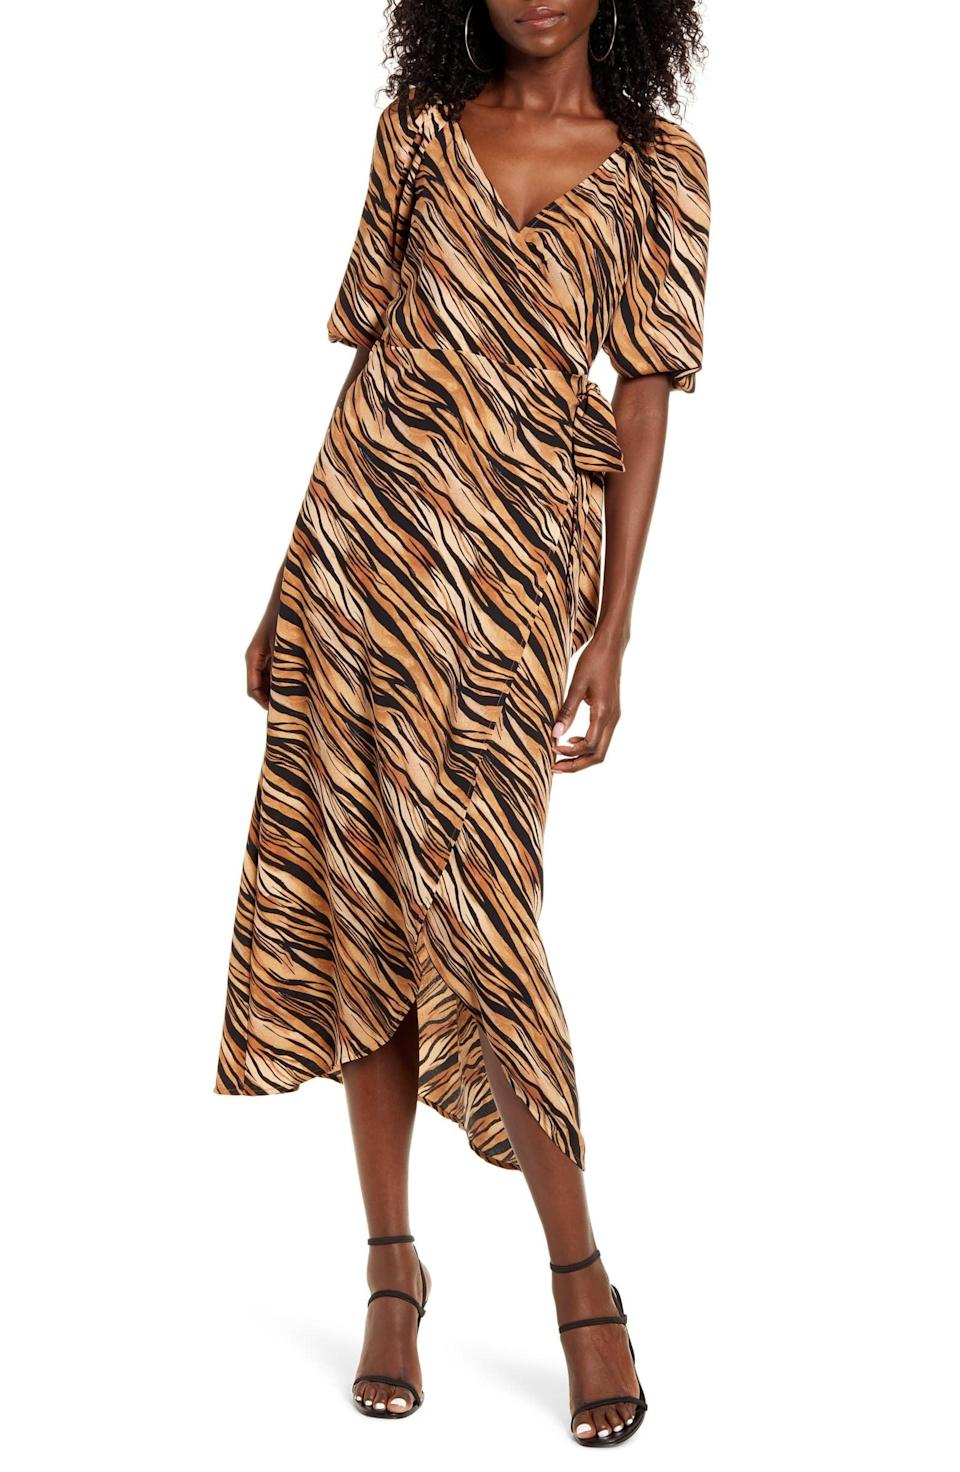 "<p>If you love animal print, then no doubt the <a href=""https://www.popsugar.com/buy/Leith-Print-Midi-Wrap-Dress-586432?p_name=Leith%20Print%20Midi%20Wrap%20Dress&retailer=shop.nordstrom.com&pid=586432&price=32&evar1=fab%3Aus&evar9=47589535&evar98=https%3A%2F%2Fwww.popsugar.com%2Ffashion%2Fphoto-gallery%2F47589535%2Fimage%2F47590109%2FLeith-Print-Midi-Wrap-Dress&list1=shopping%2Cdresses%2Csummer%2Csummer%20fashion%2Cfashion%20shopping&prop13=mobile&pdata=1"" class=""link rapid-noclick-resp"" rel=""nofollow noopener"" target=""_blank"" data-ylk=""slk:Leith Print Midi Wrap Dress"">Leith Print Midi Wrap Dress</a> ($32, originally $79) is for you.</p>"